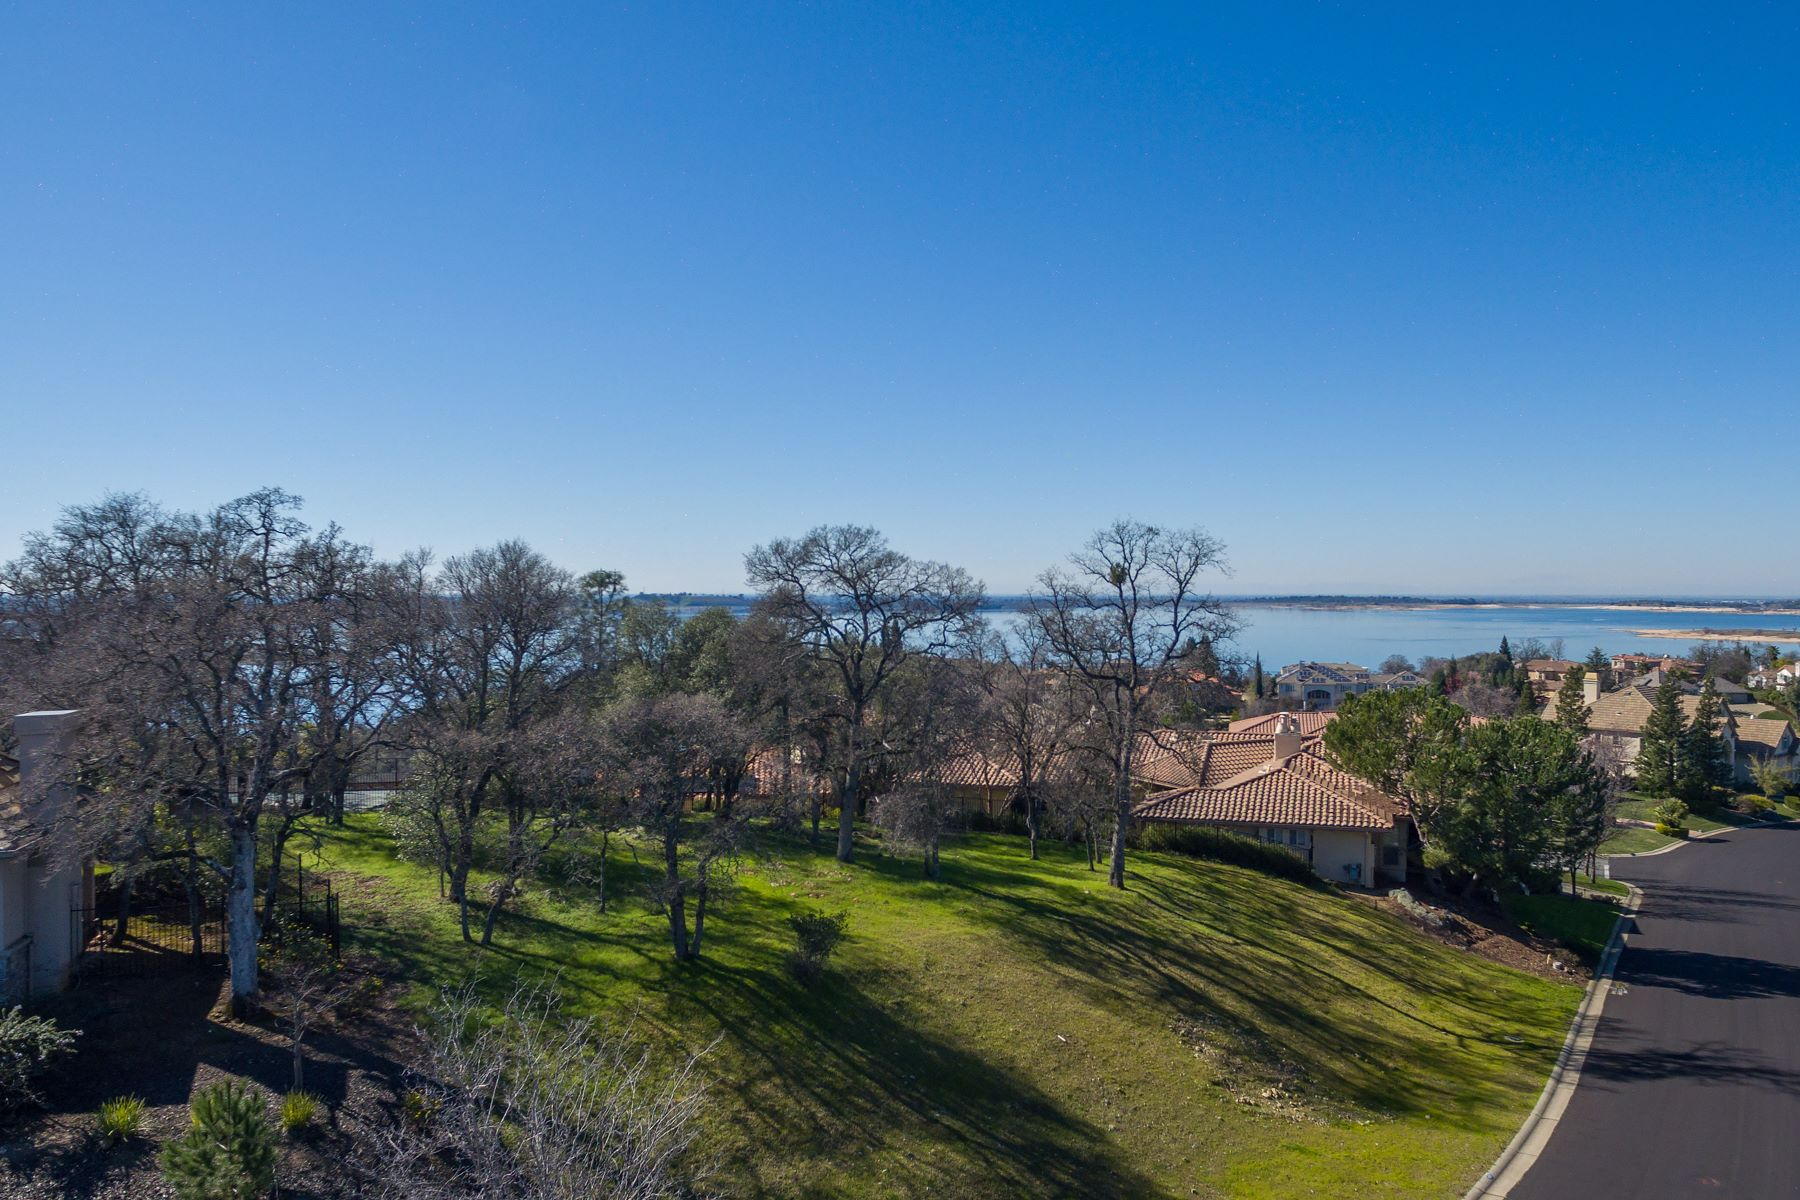 Land for Active at 602 Lakecrest Drive, El Dorado Hills, CA 95762 602 Lakecrest Drive El Dorado Hills, California 95762 United States